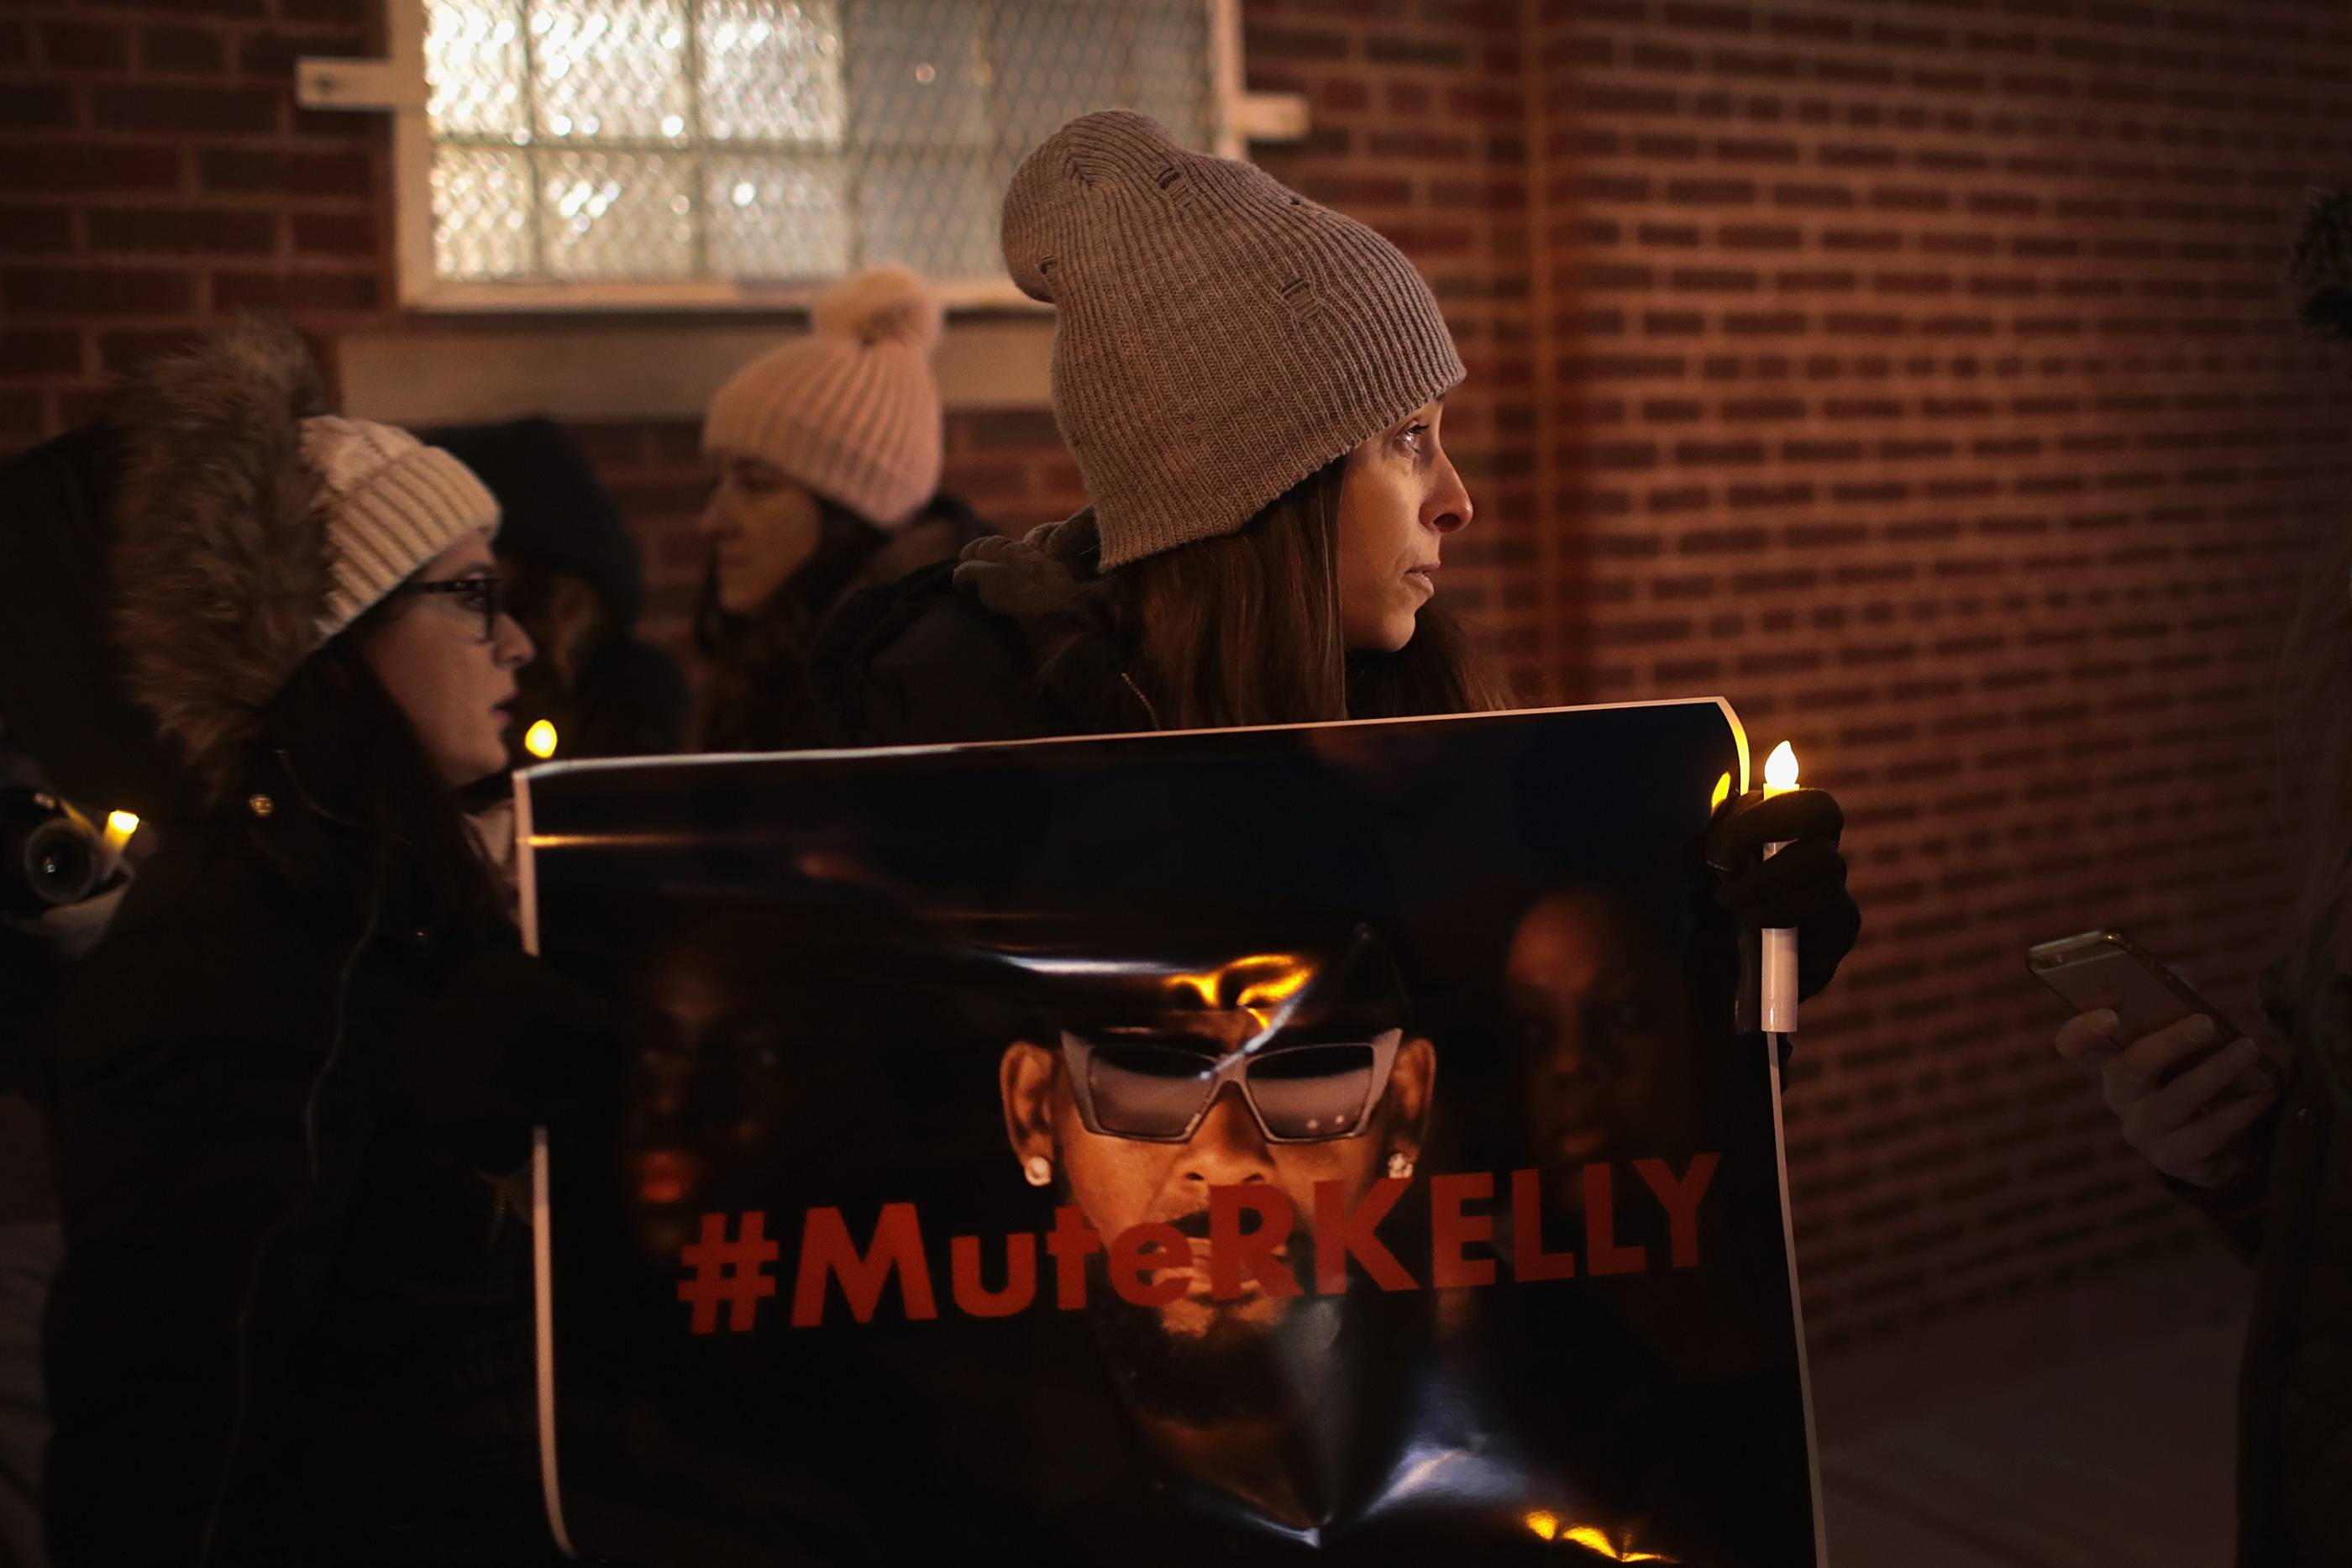 Protestors Rally In Support Of Sex Abuse Survivors At R Kelly's Chicago Studios